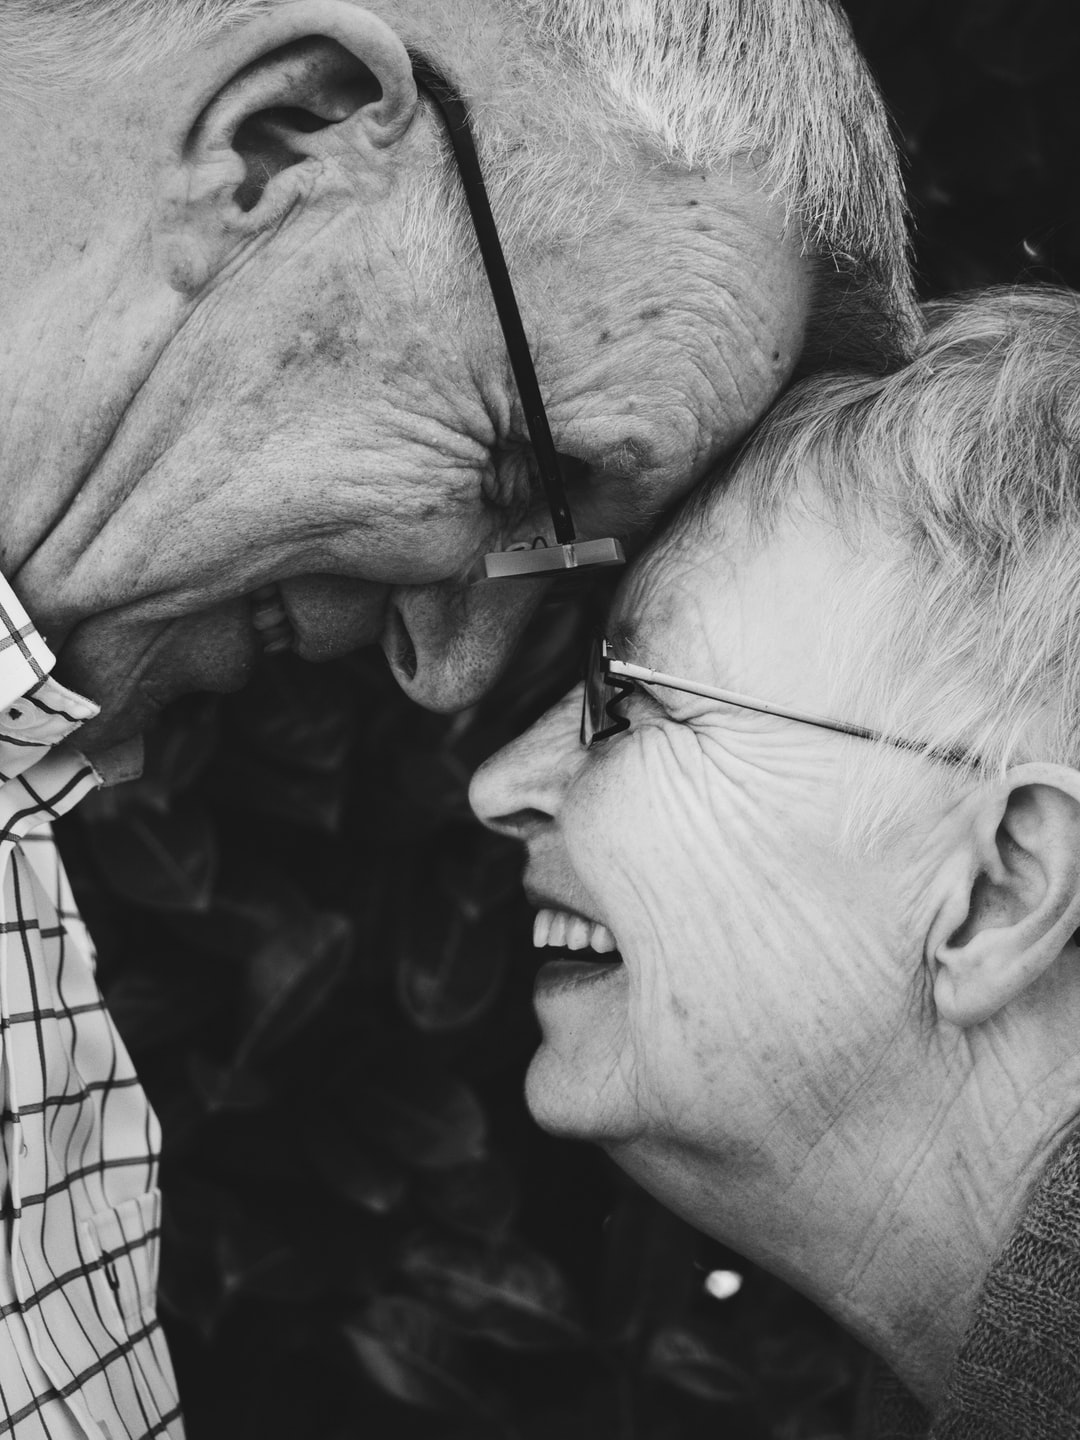 Elderly man and woman touch foreheads in black and white photo